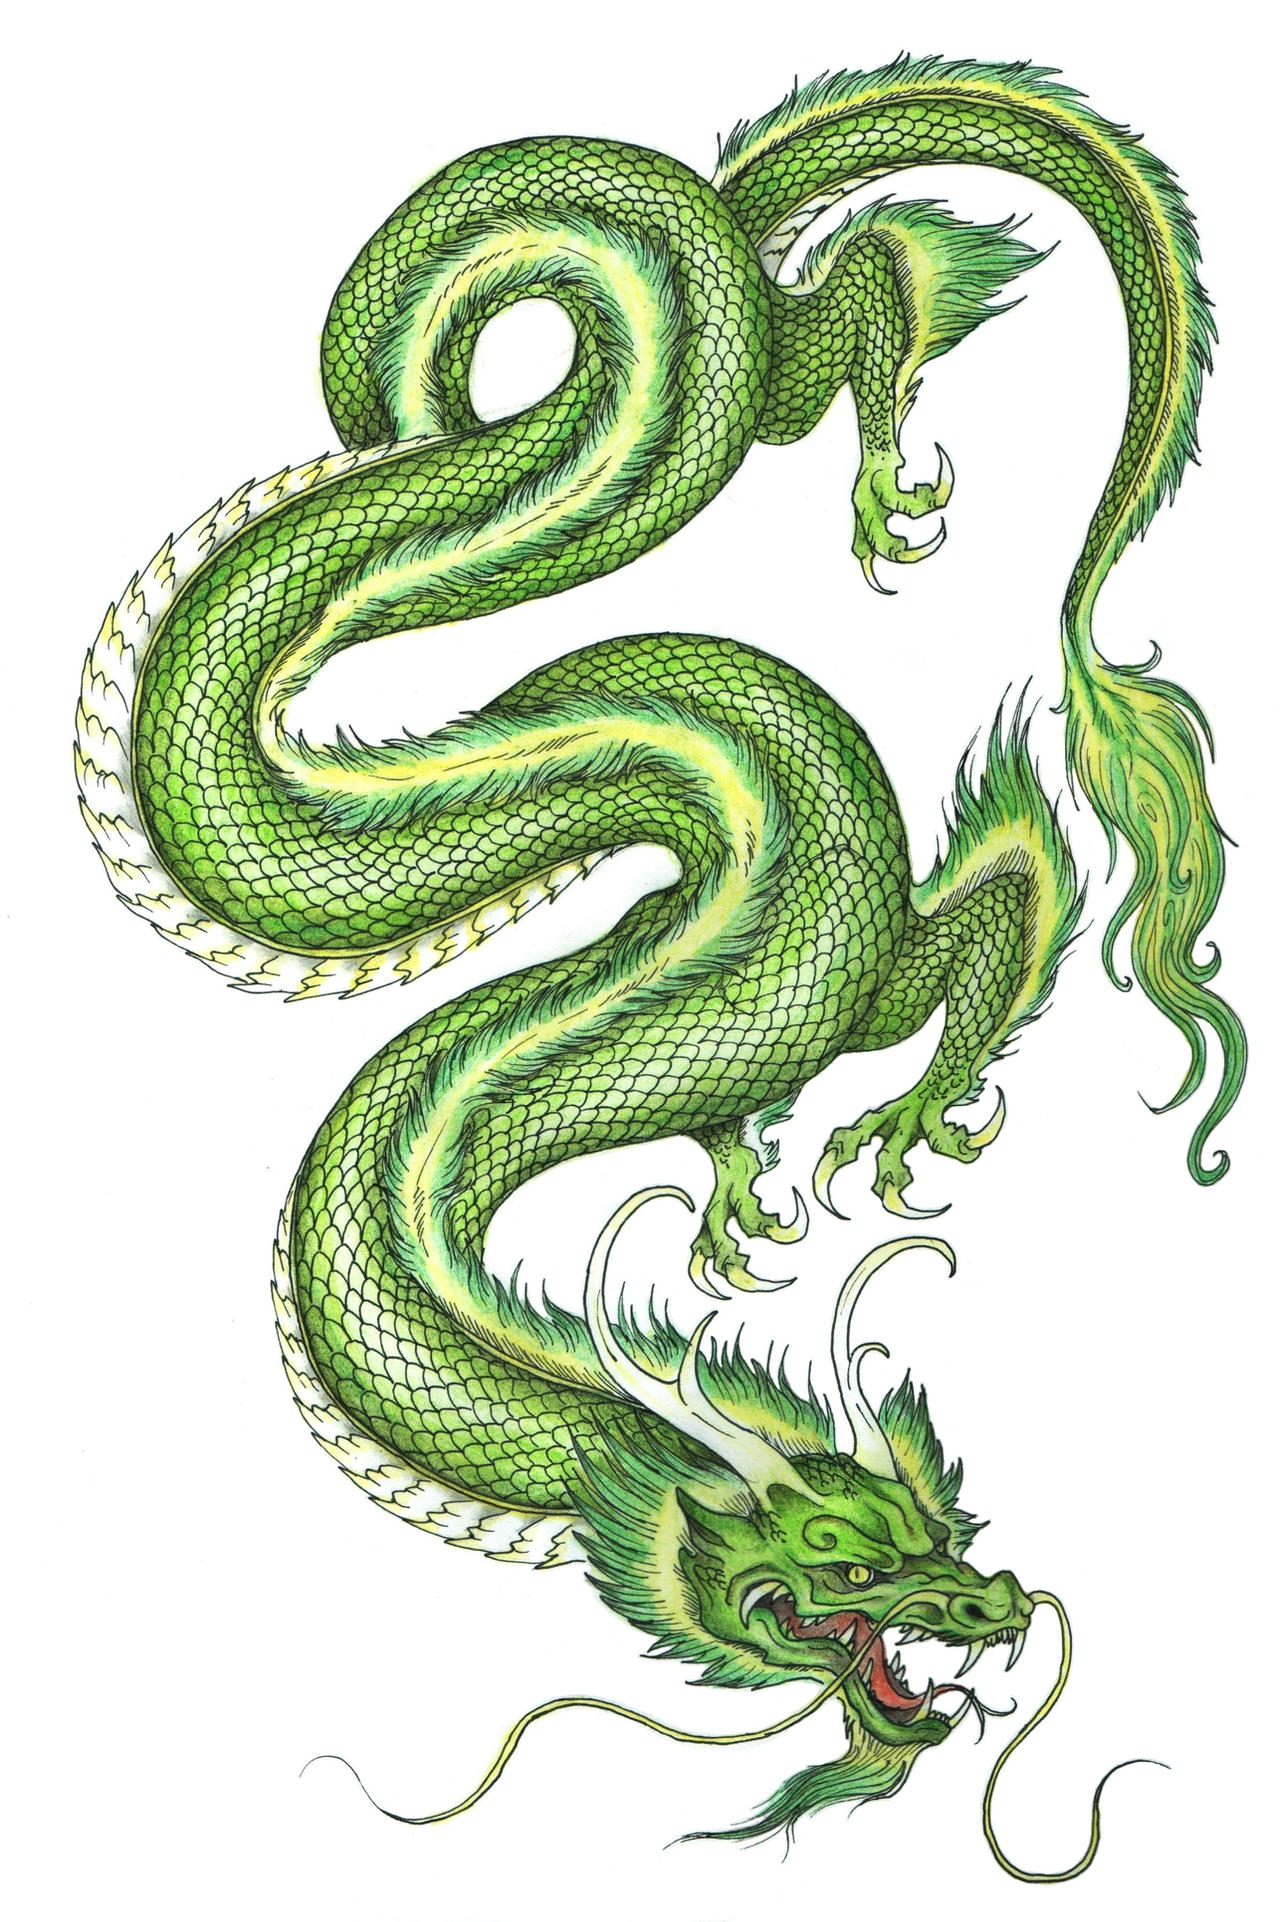 Just a Chinese dragon by Hironi on DeviantArt